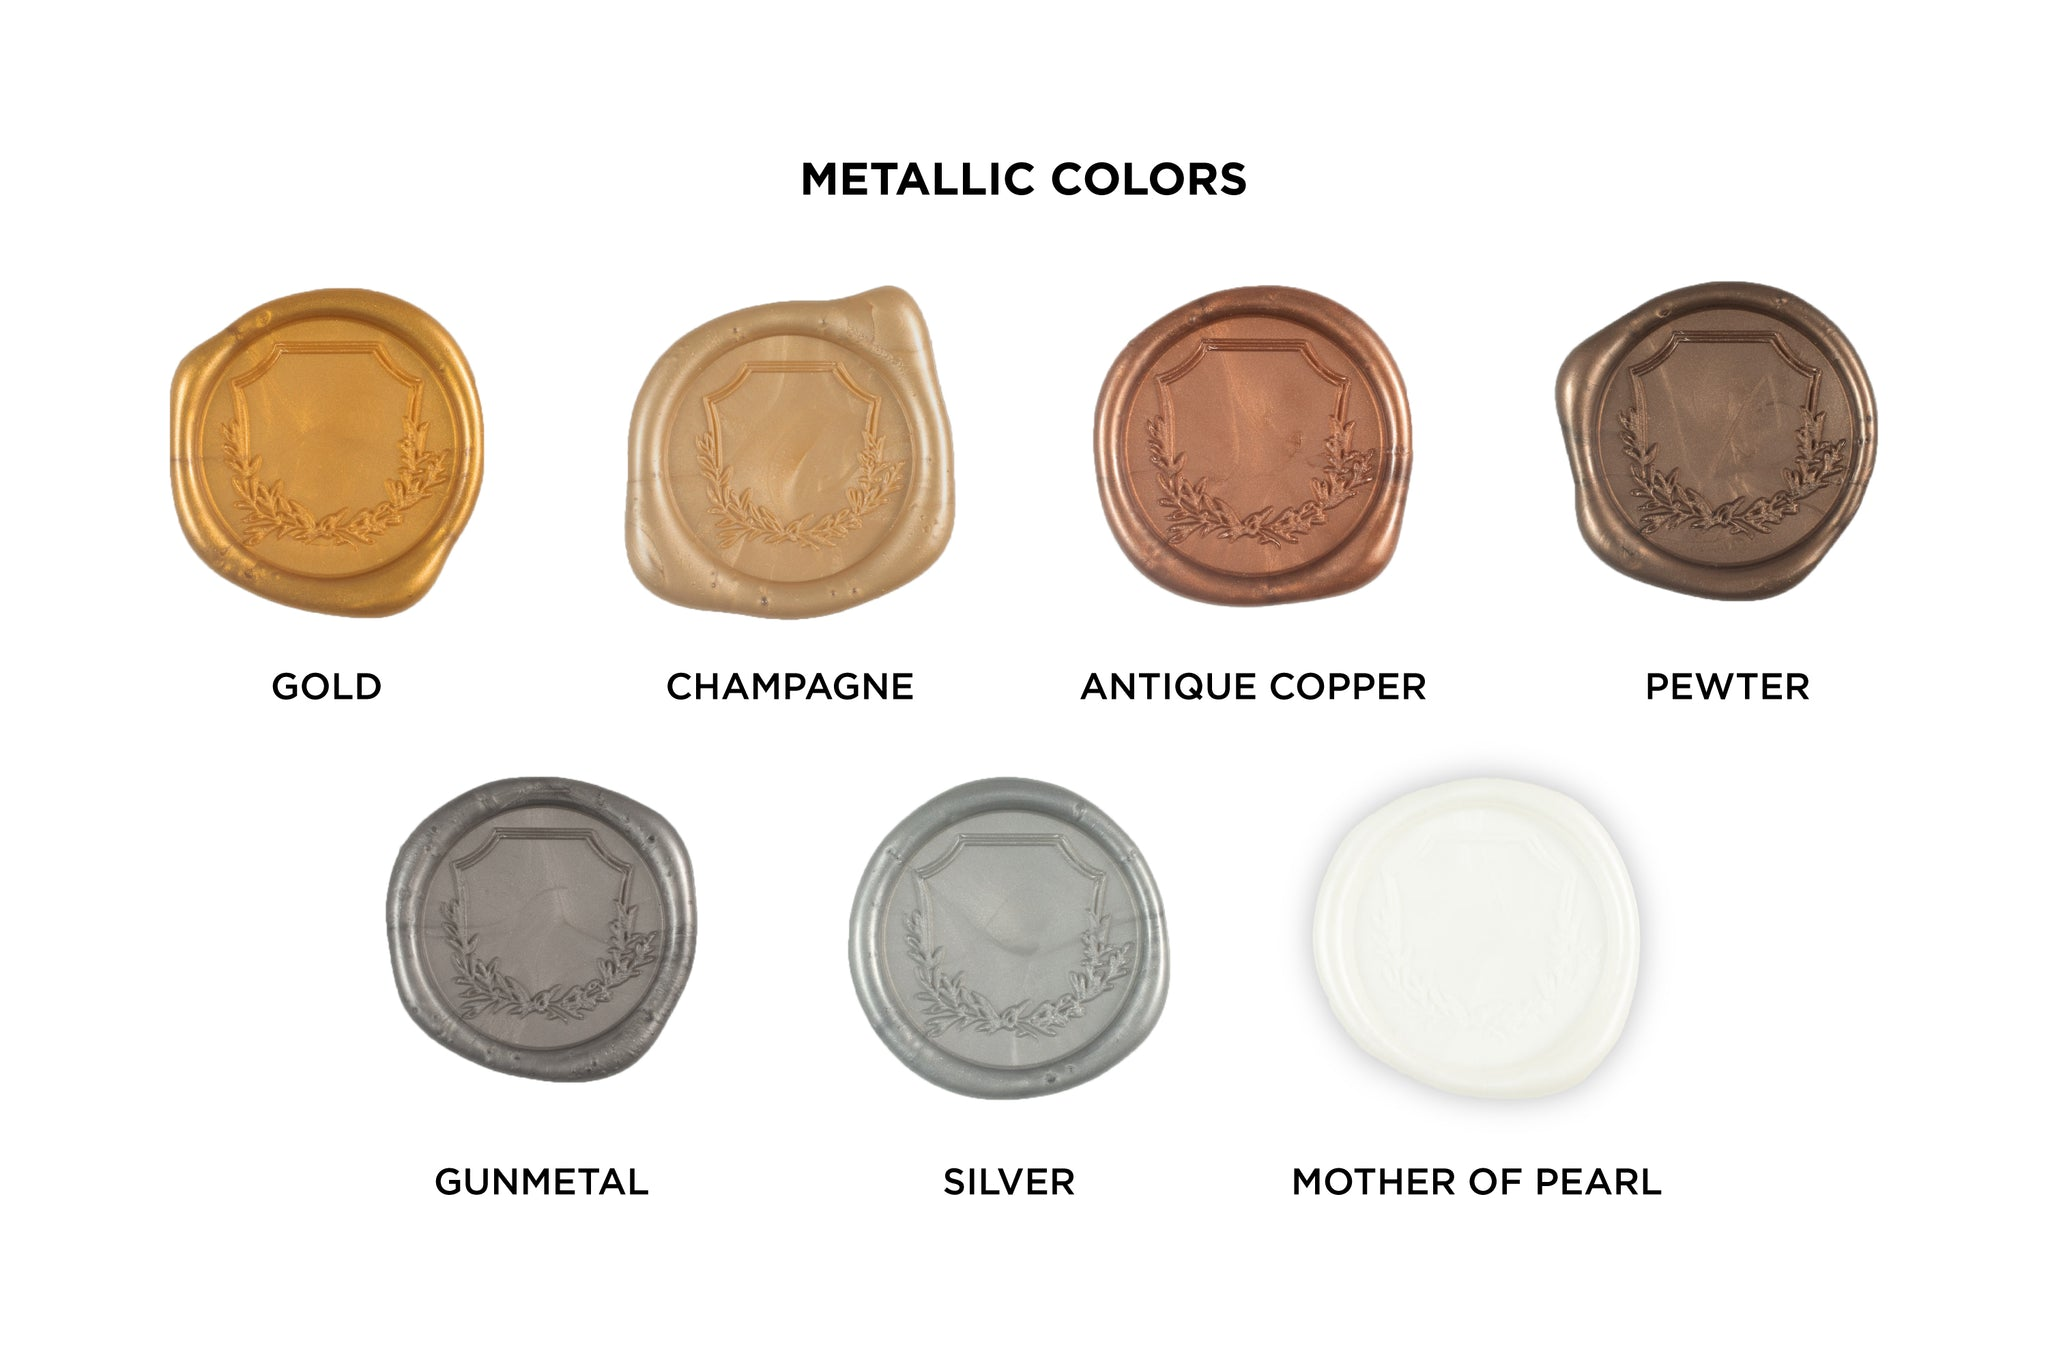 Wax Seal Metallic Colors. Gold, Champagne, Antique Copper, Pewter, Gunmetal, Silver, Mother of Pearl